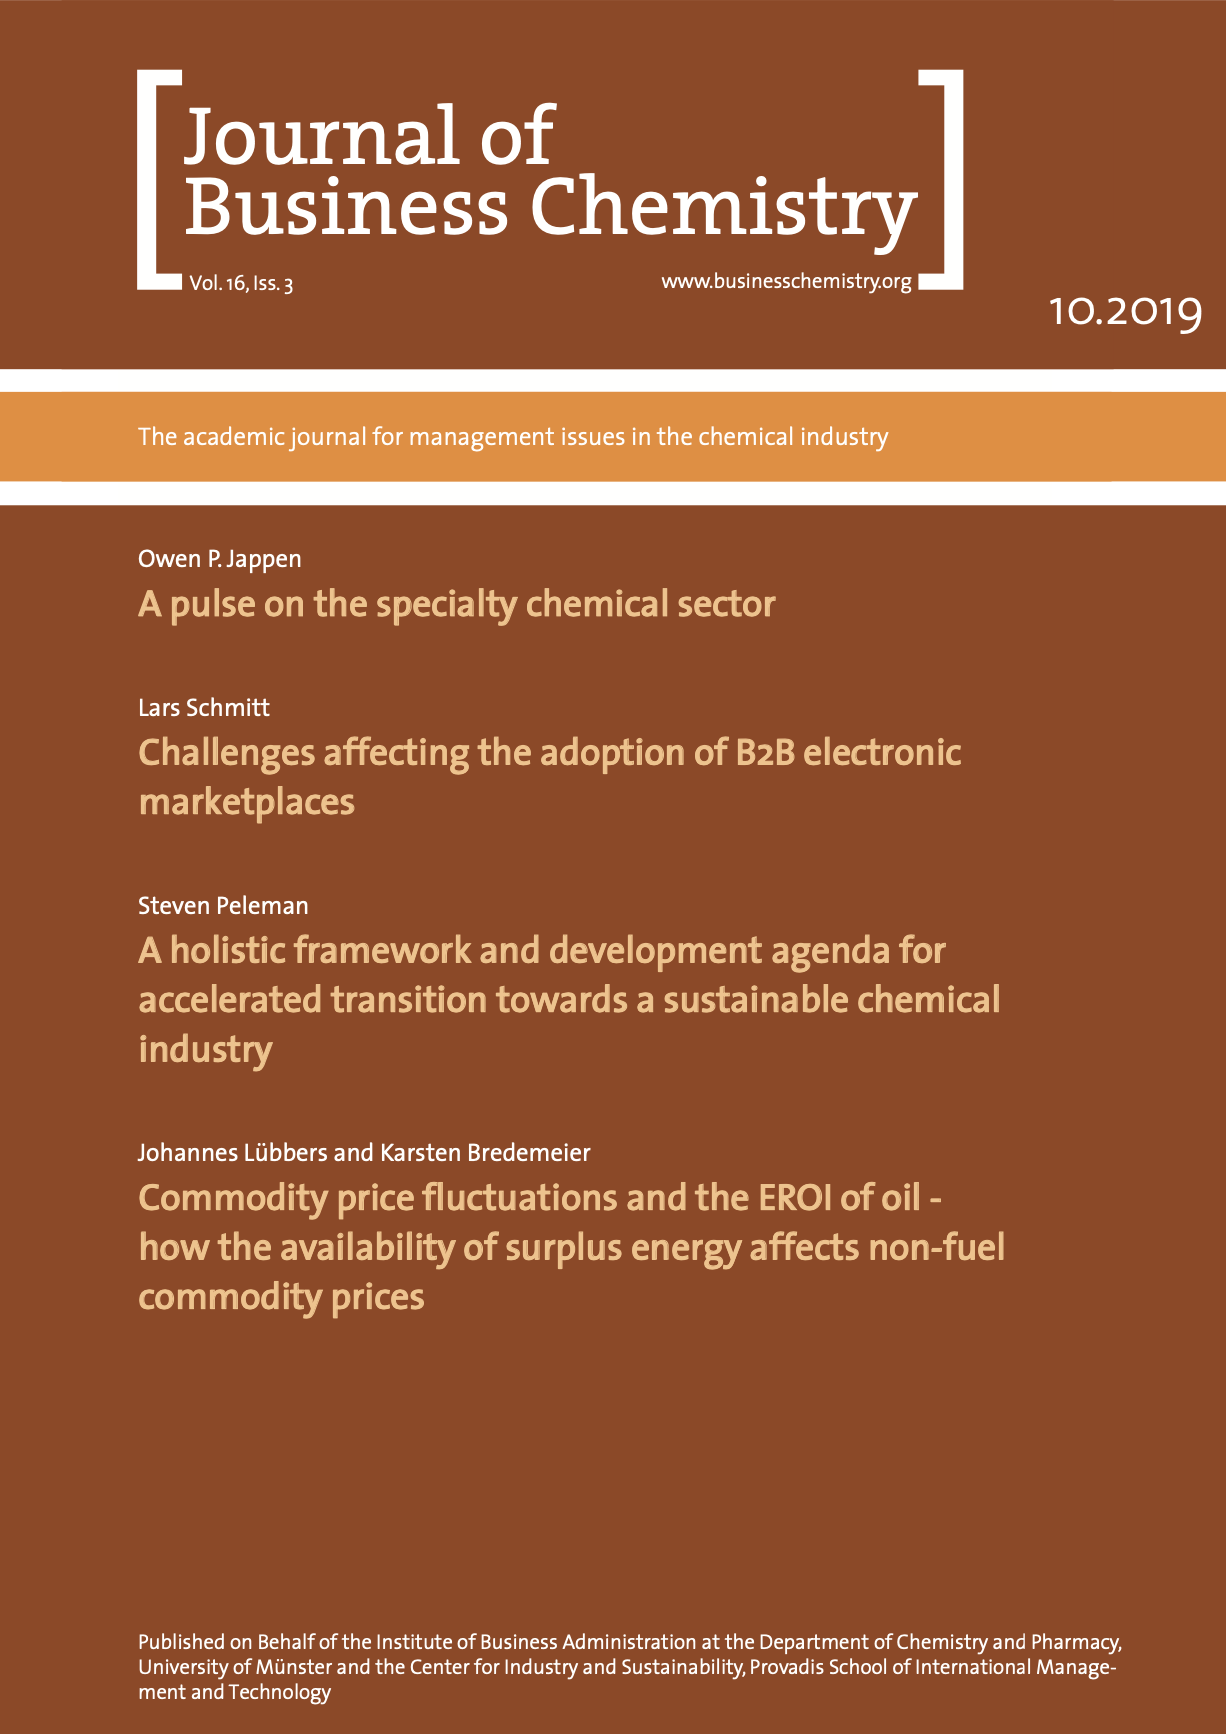 Journal of Business Chemistry October 2019